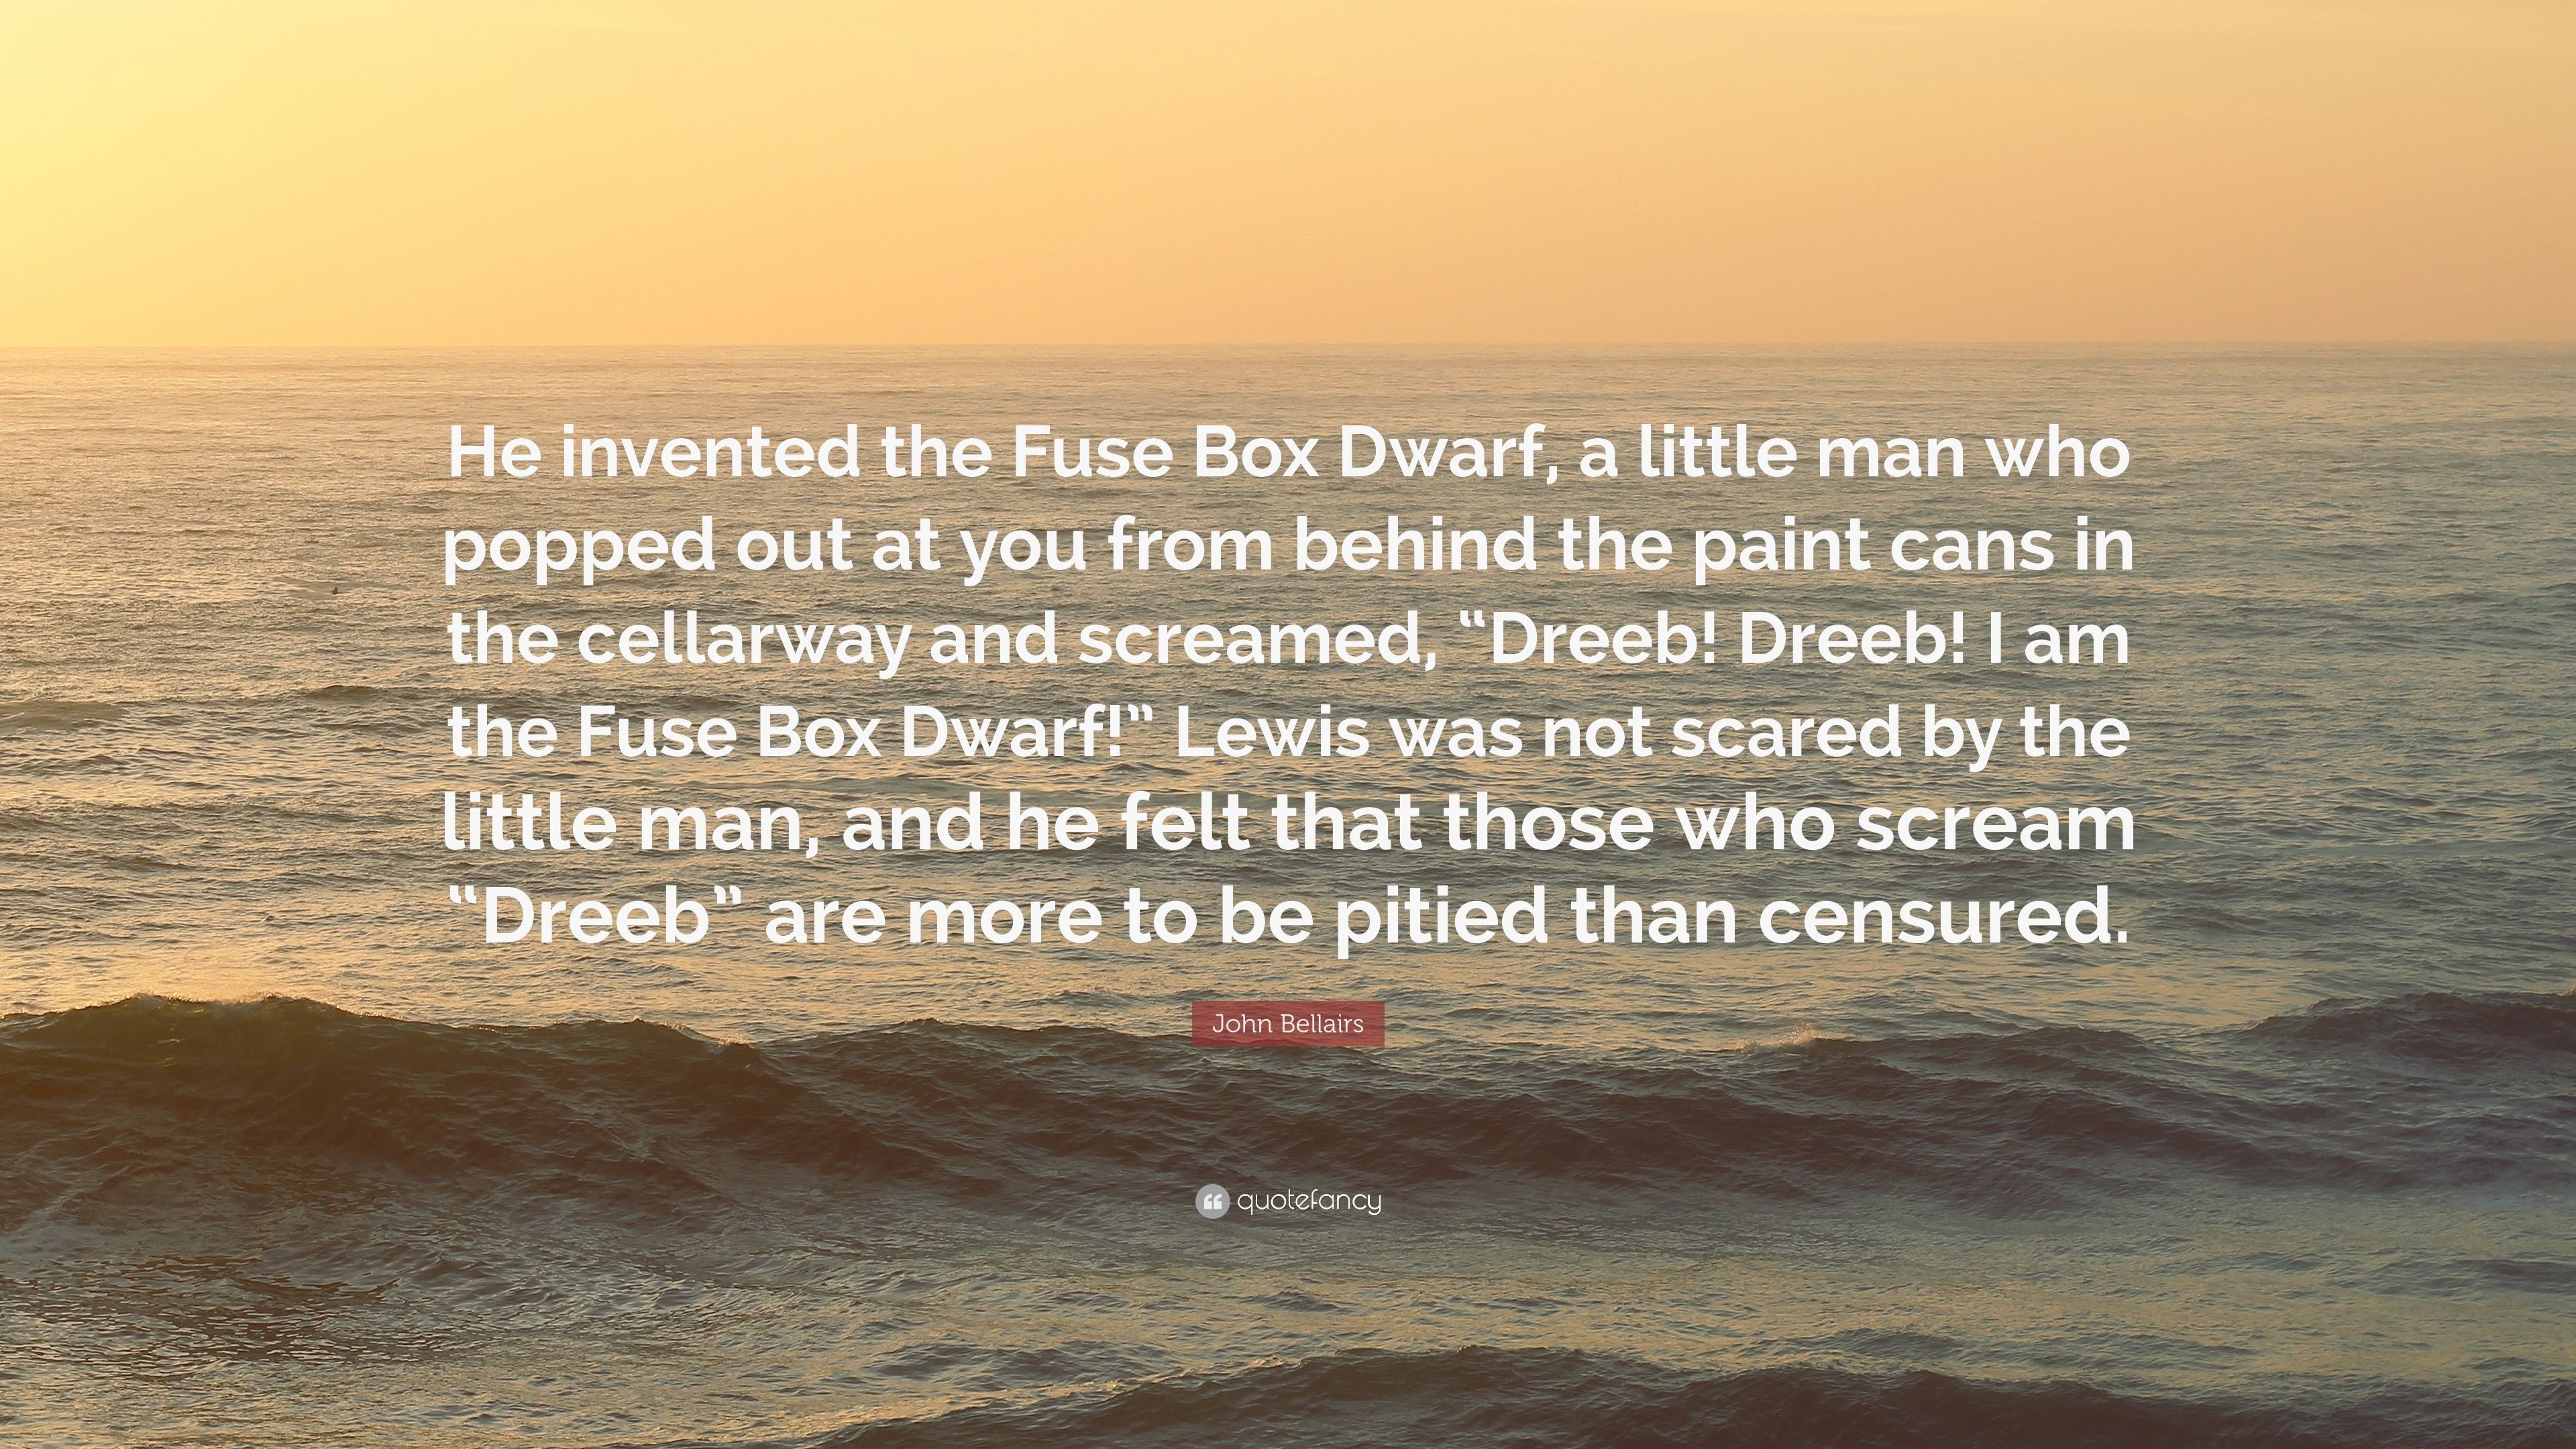 3297084 John Bellairs Quote He invented the Fuse Box Dwarf a little man john bellairs quote \u201che invented the fuse box dwarf, a little man  at soozxer.org